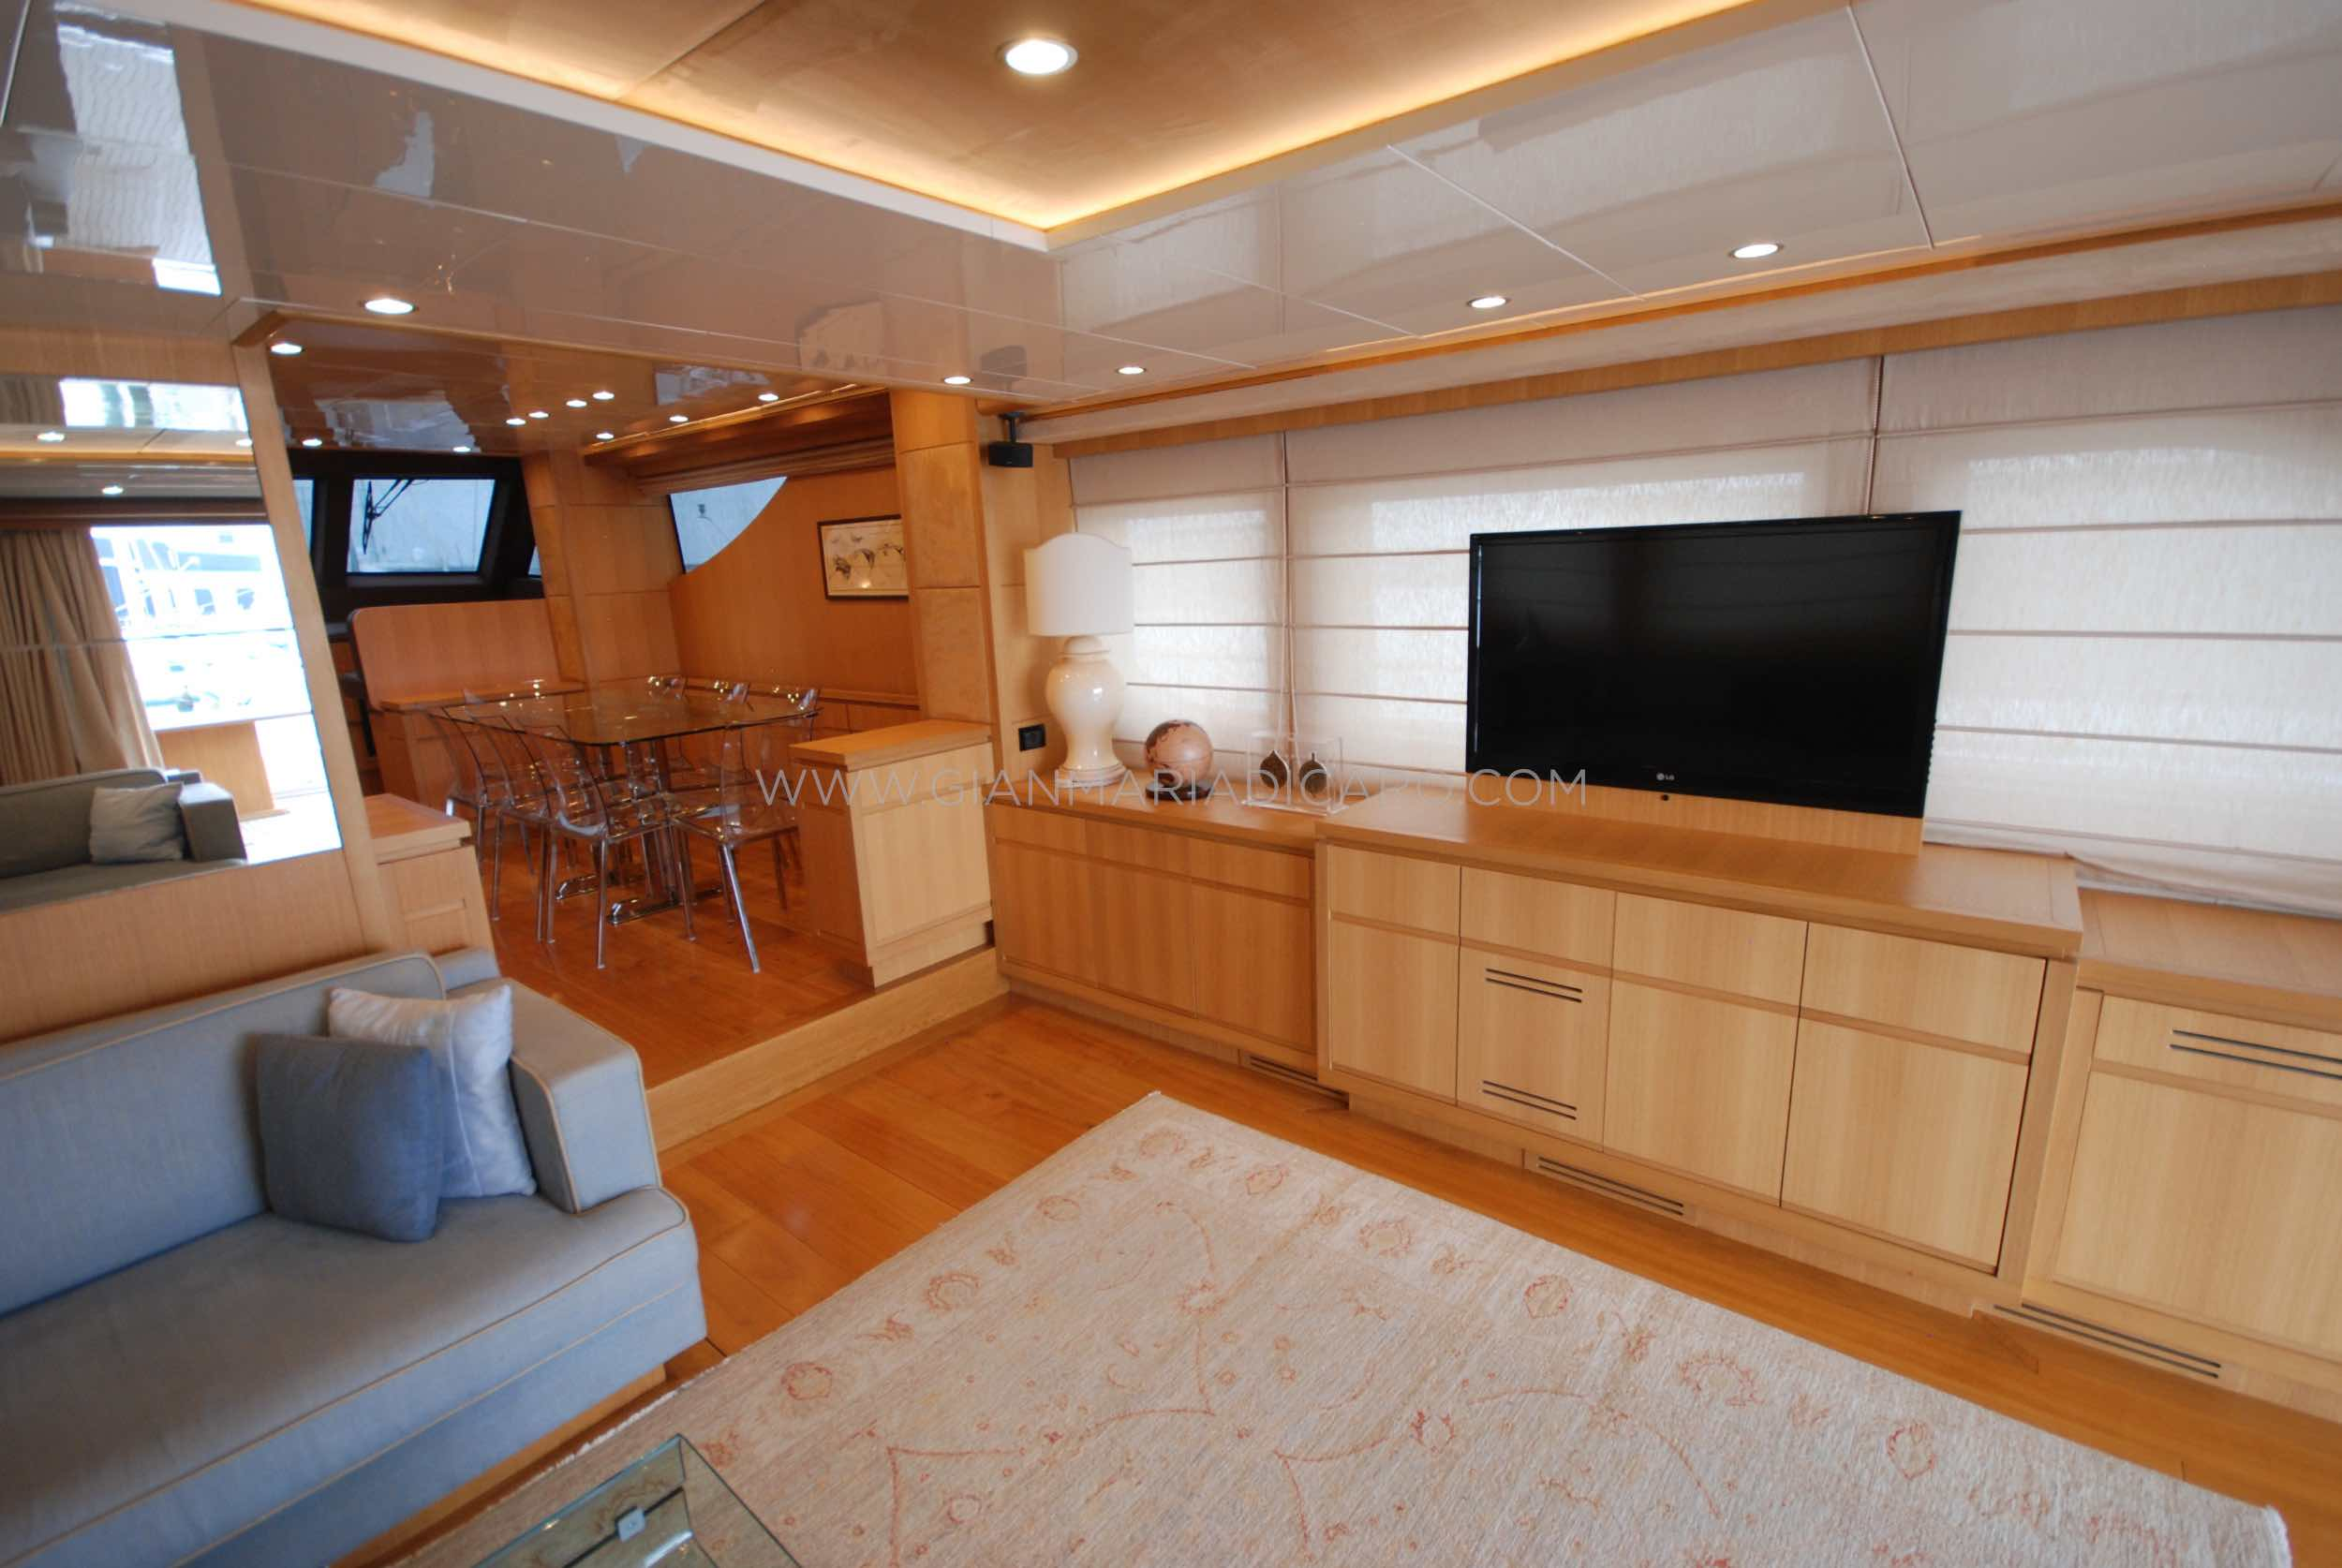 emys-yacht-22-unica-for-sale-124.jpg